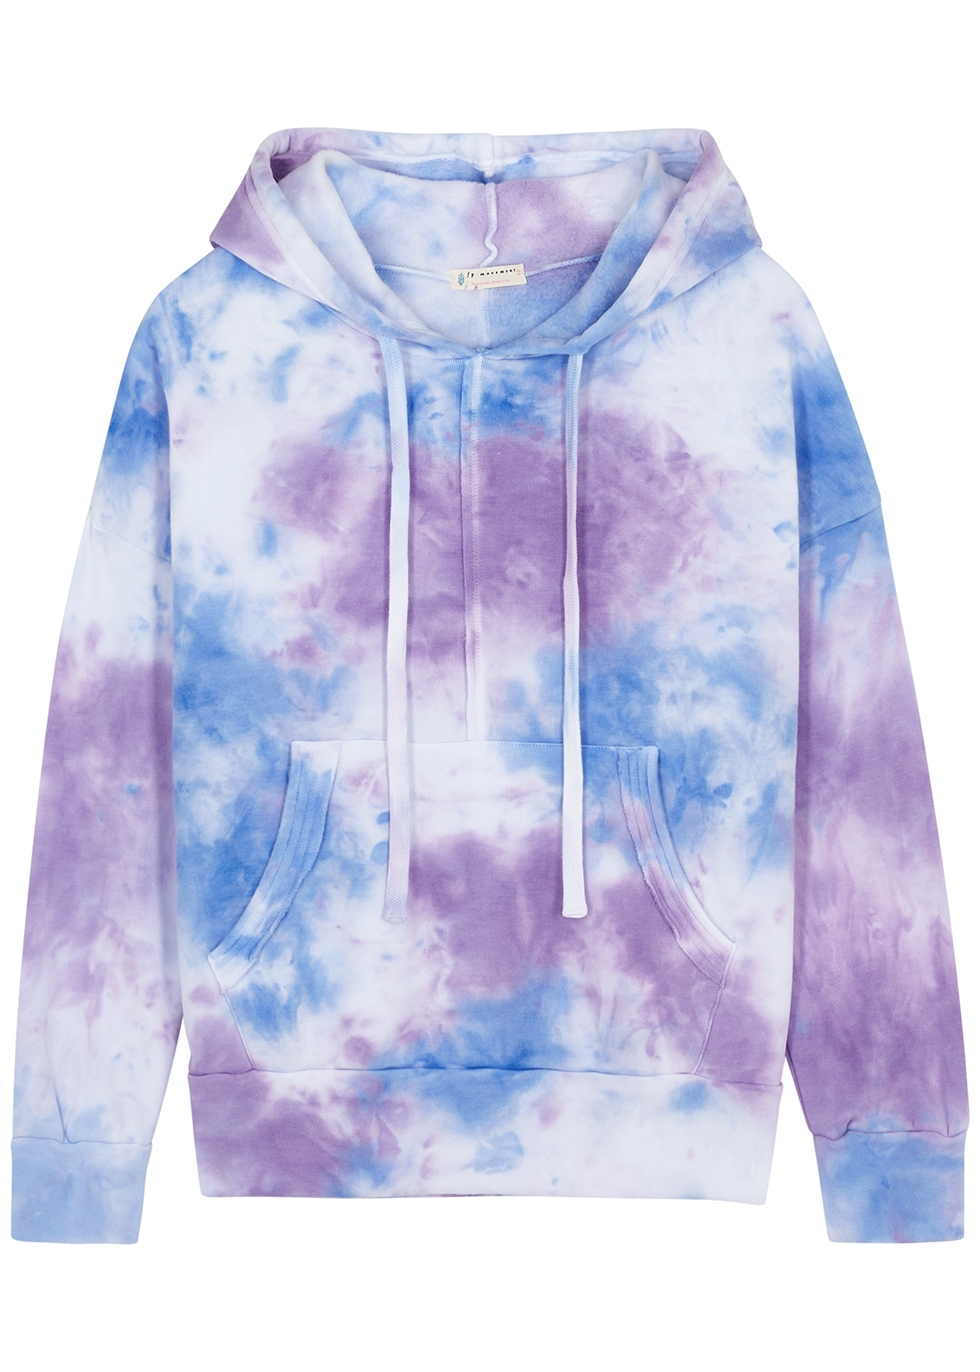 Work It Out tie-dyed hooded sweatshirt